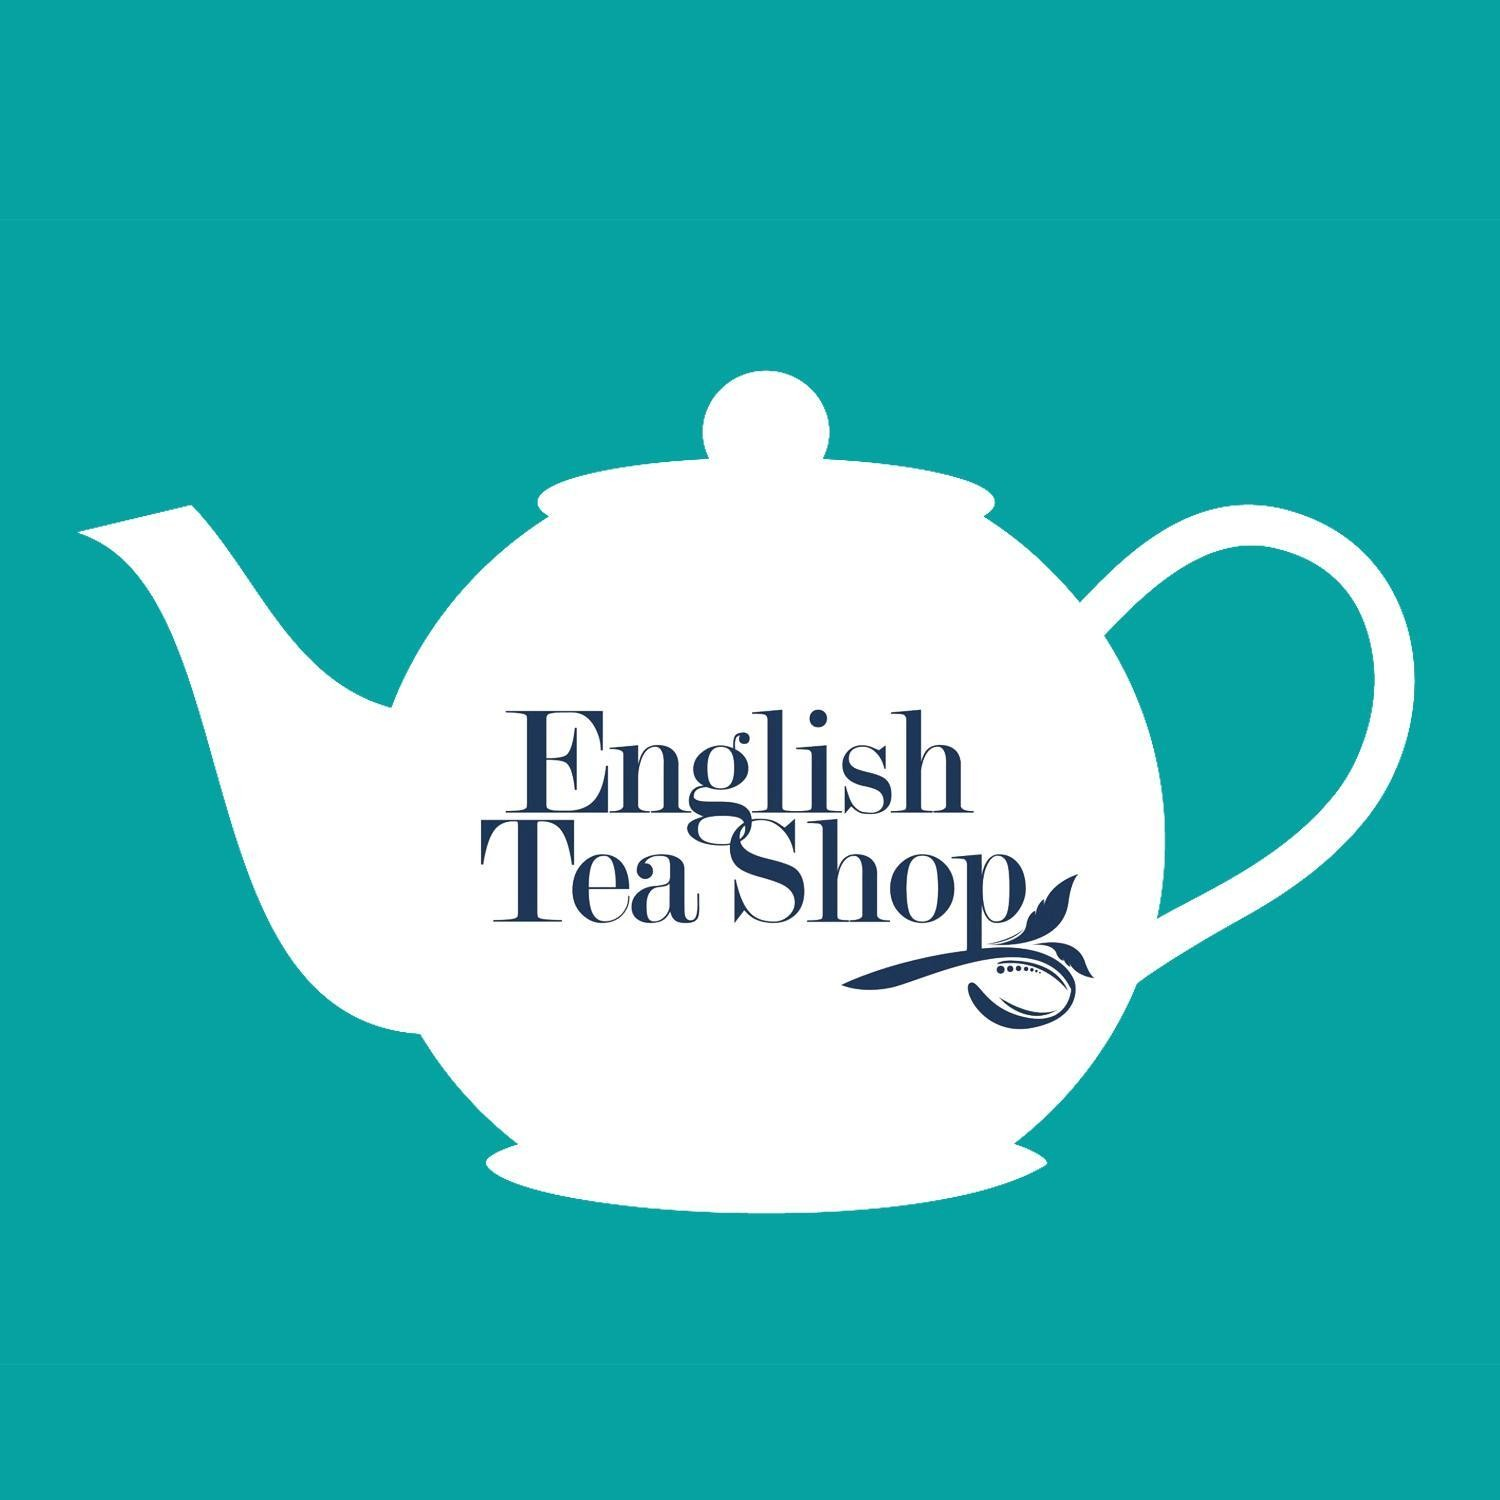 English Tea Shop